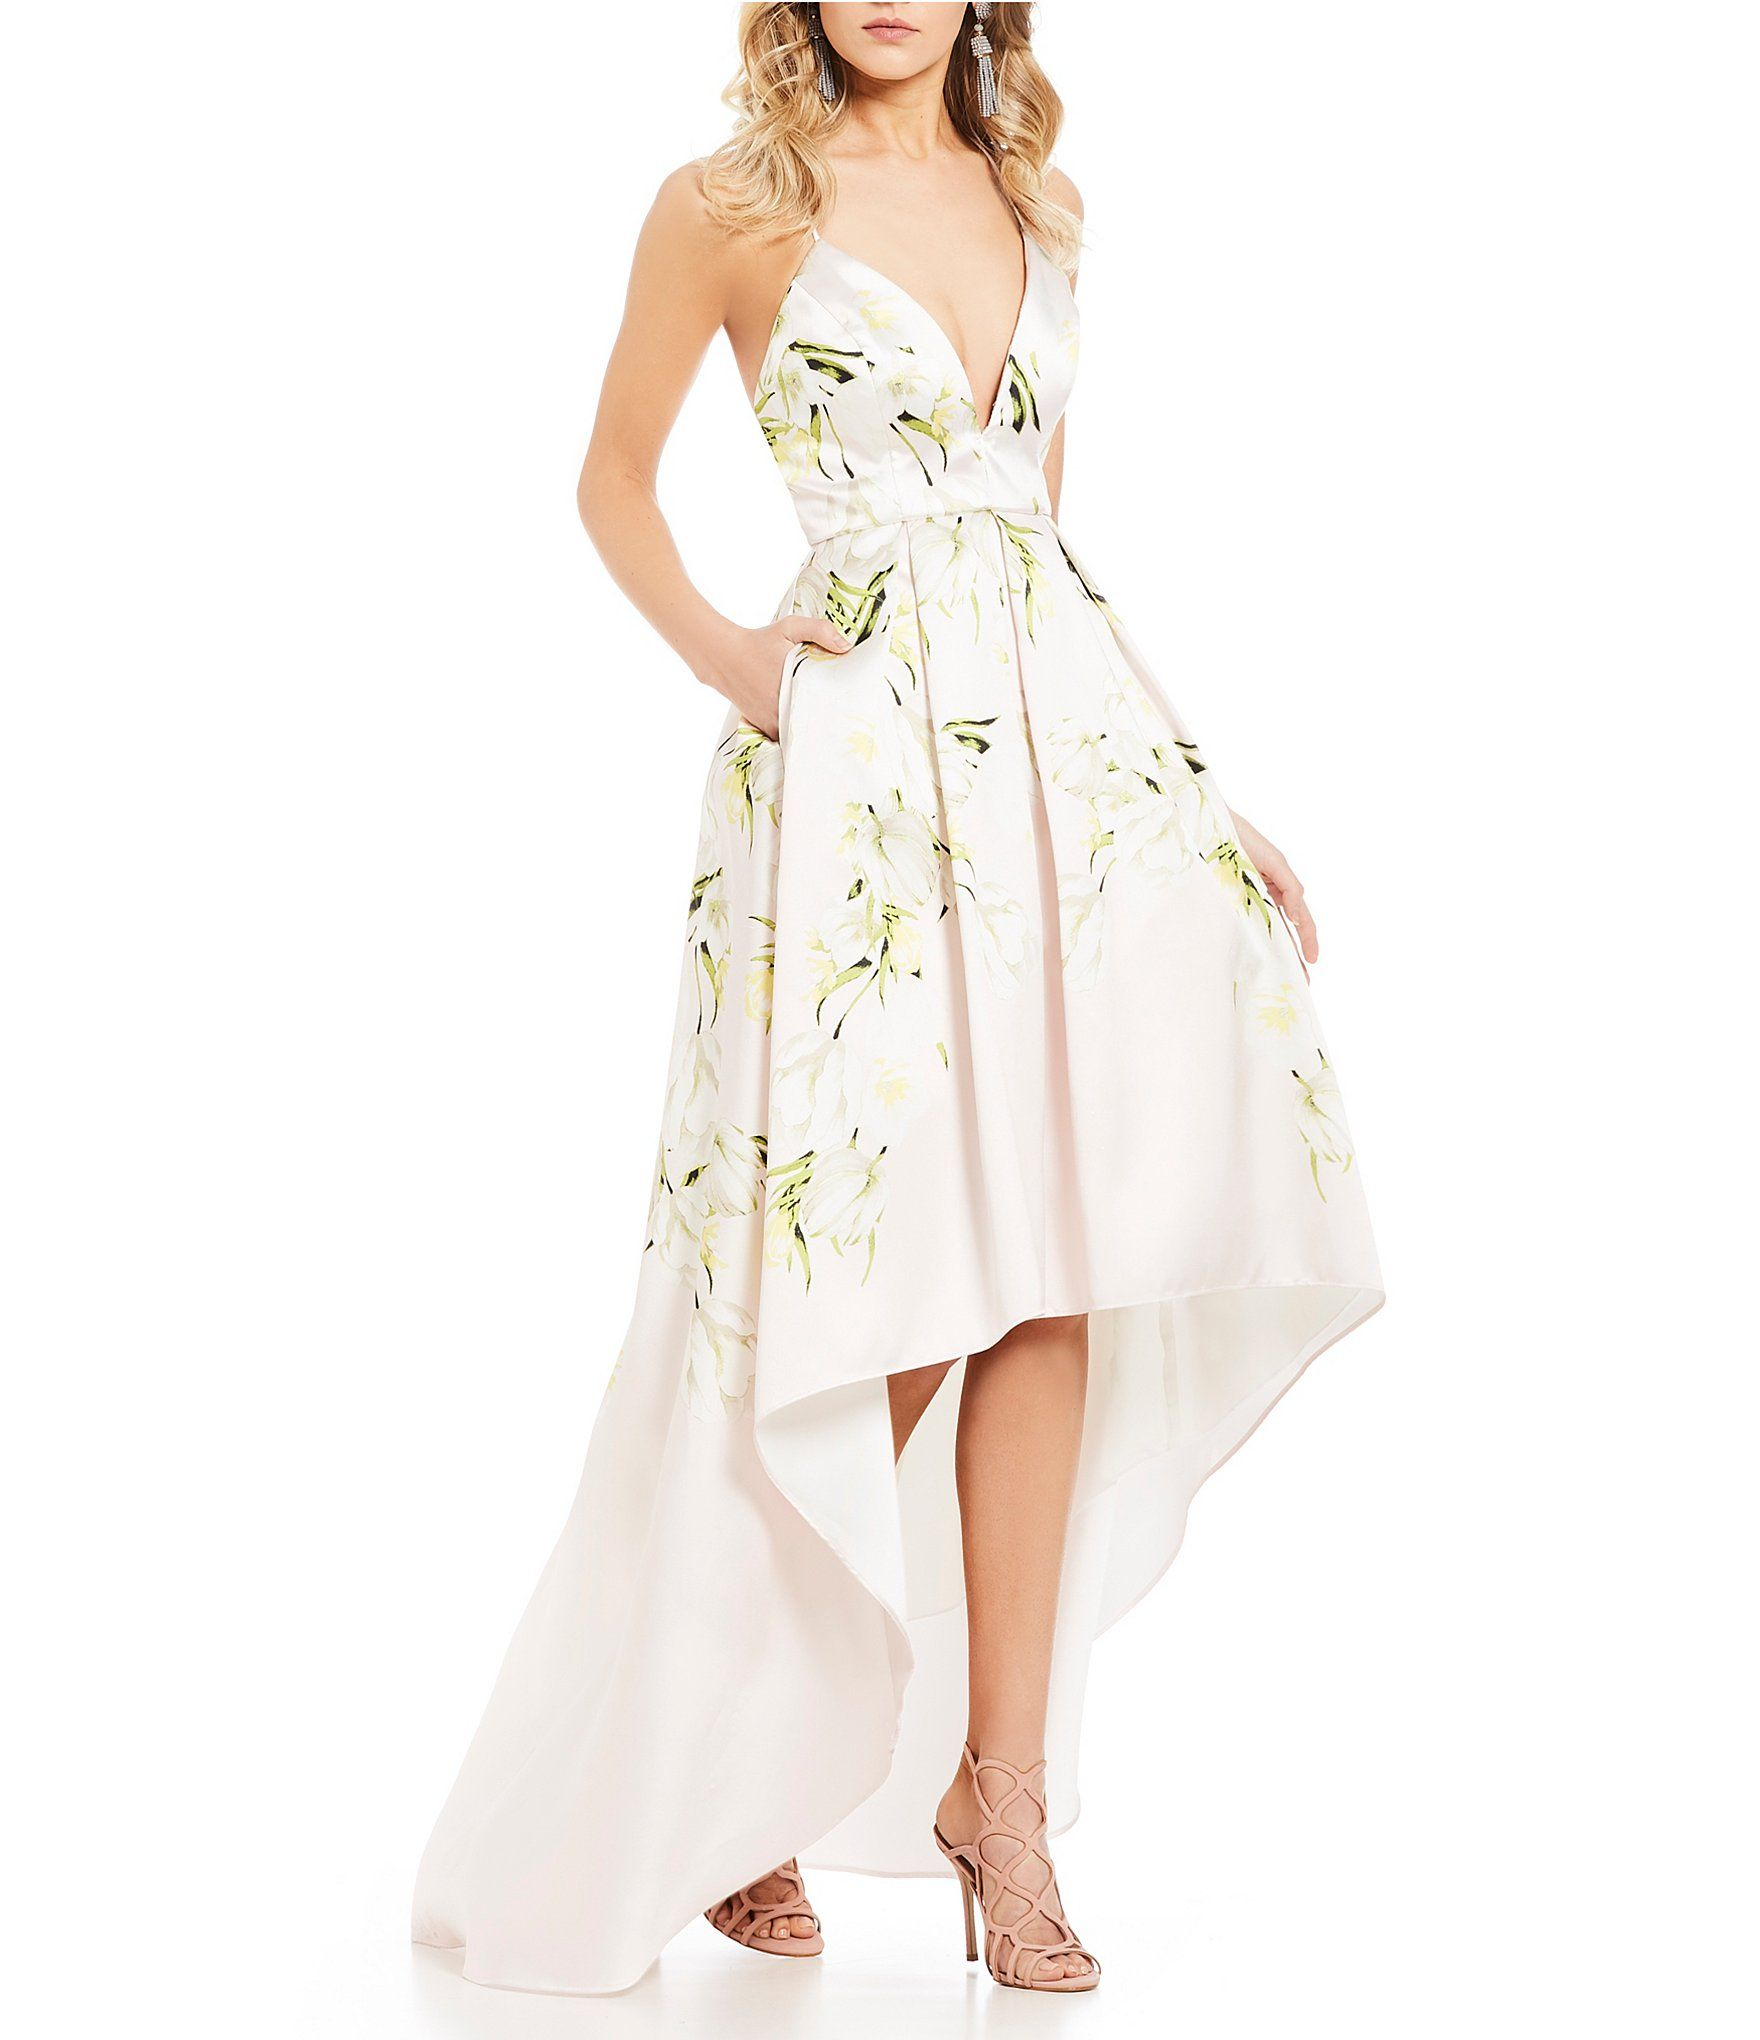 Jump Tulip Floral Print High-Low Ball Gown | Dillards, Ball gowns ...